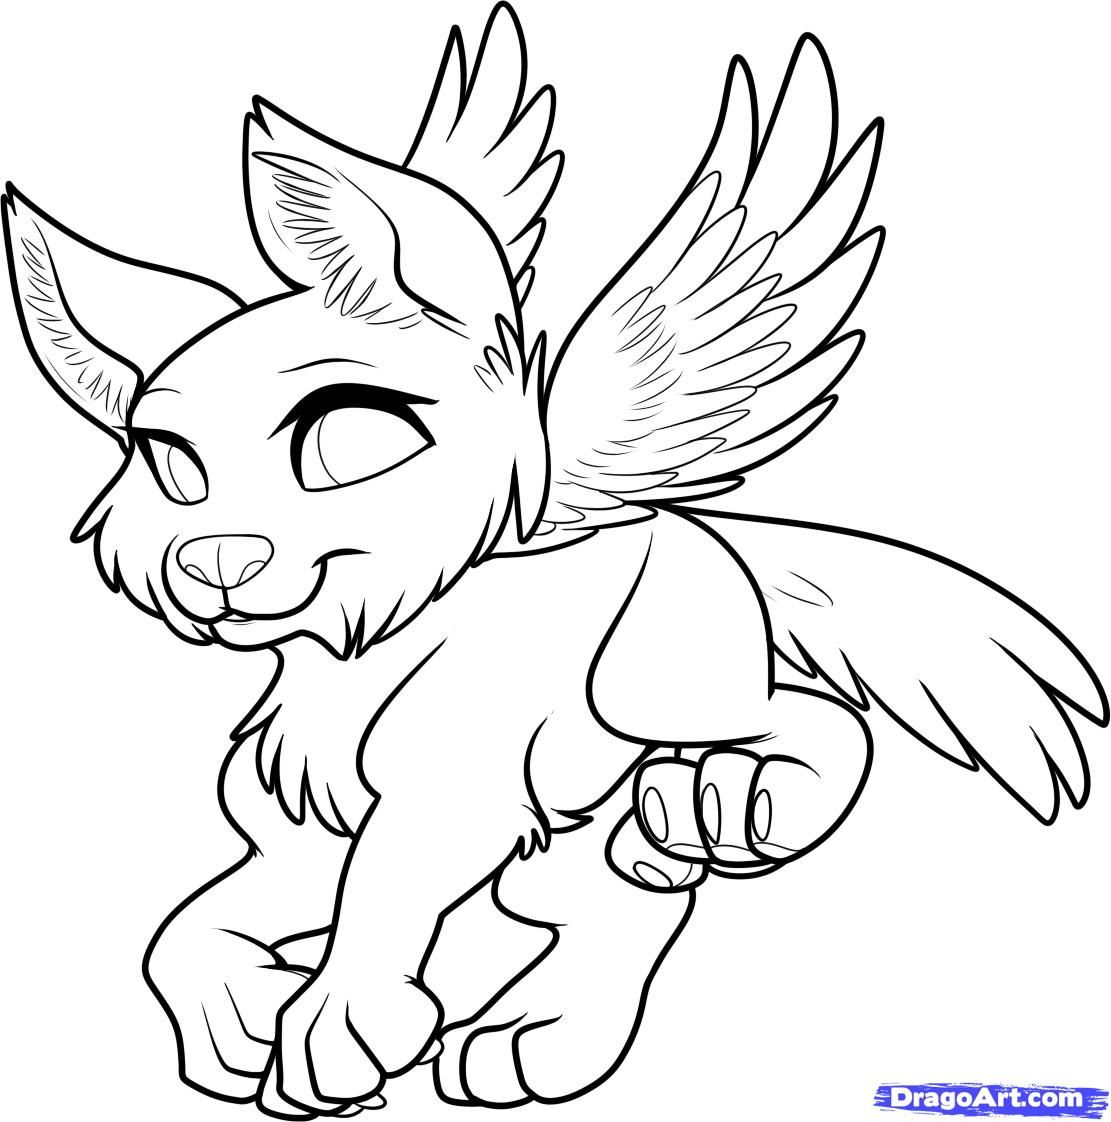 how to draw a flying wolf flying wolf adult coloring pagesdoodle - How To Draw Coloring Pages